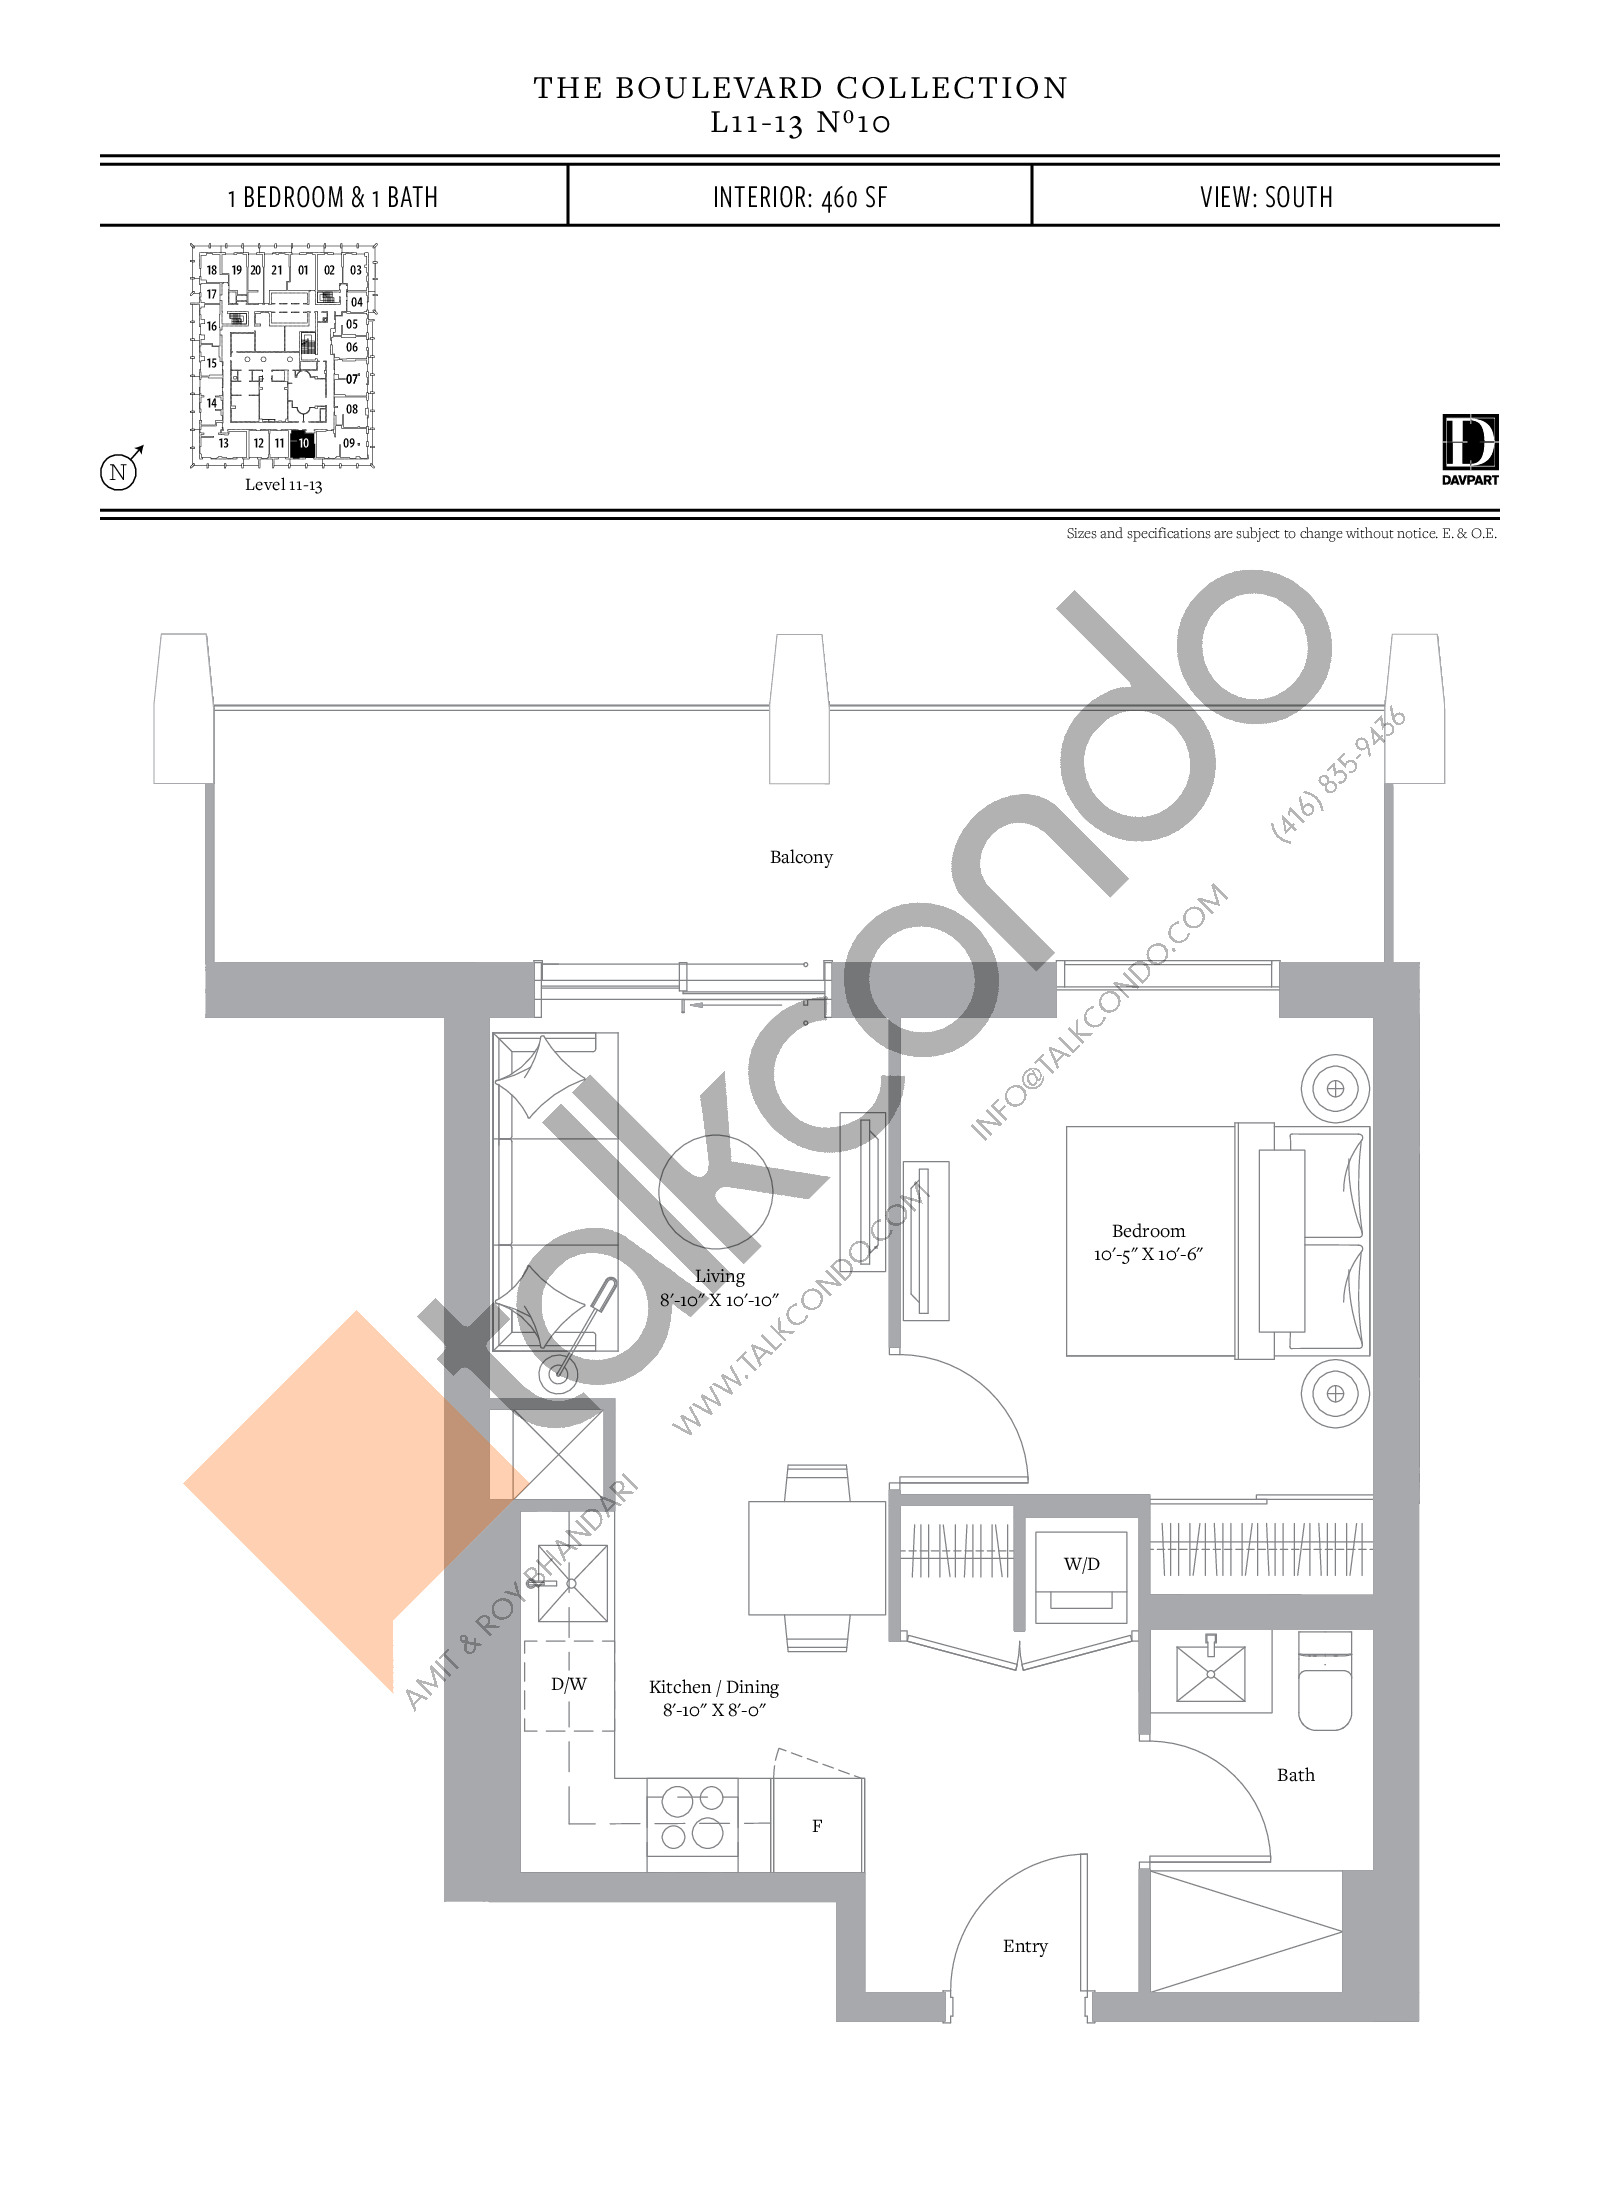 No 10 - The Boulevard Collection Floor Plan at The United Bldg. Condos - 460 sq.ft